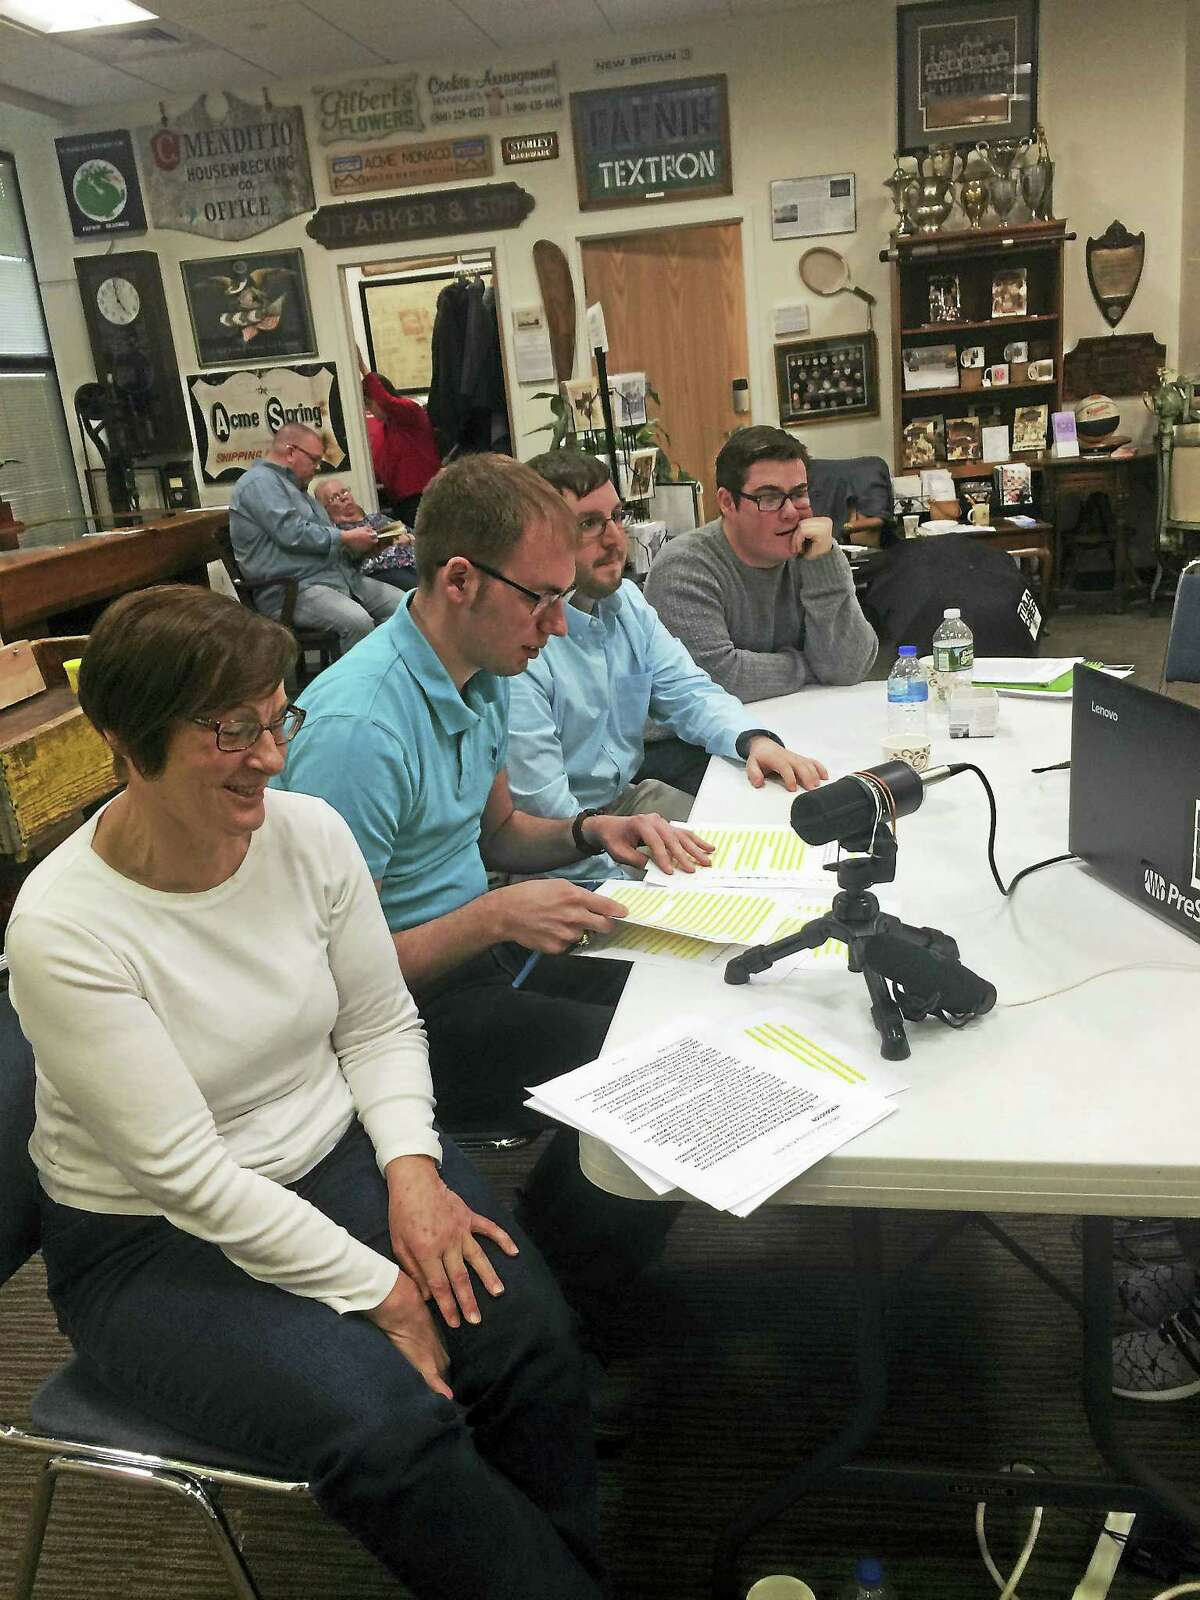 From left are Andrea Kulak, Joe Guerrera, Ryan Paolino, Jacob Carey and Henry Arneth in background, producing a podcast with letters writted by Connecticut soldiers during World War I.